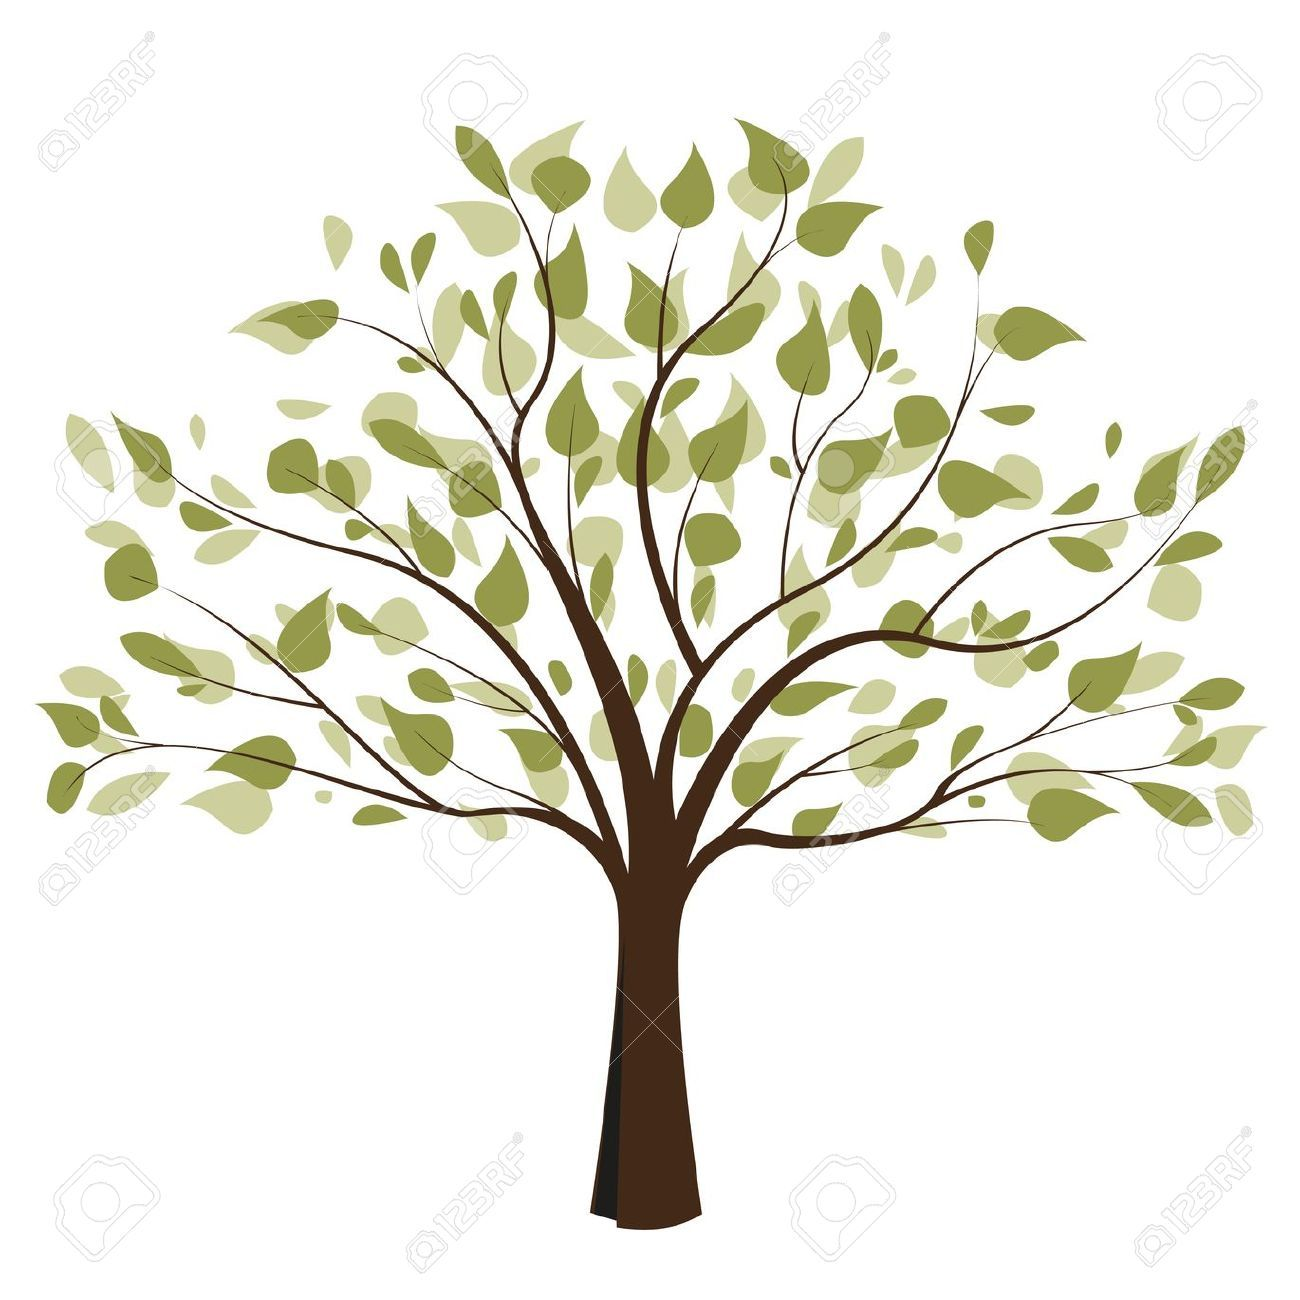 clipart free stock Life clipart. Tree of black and